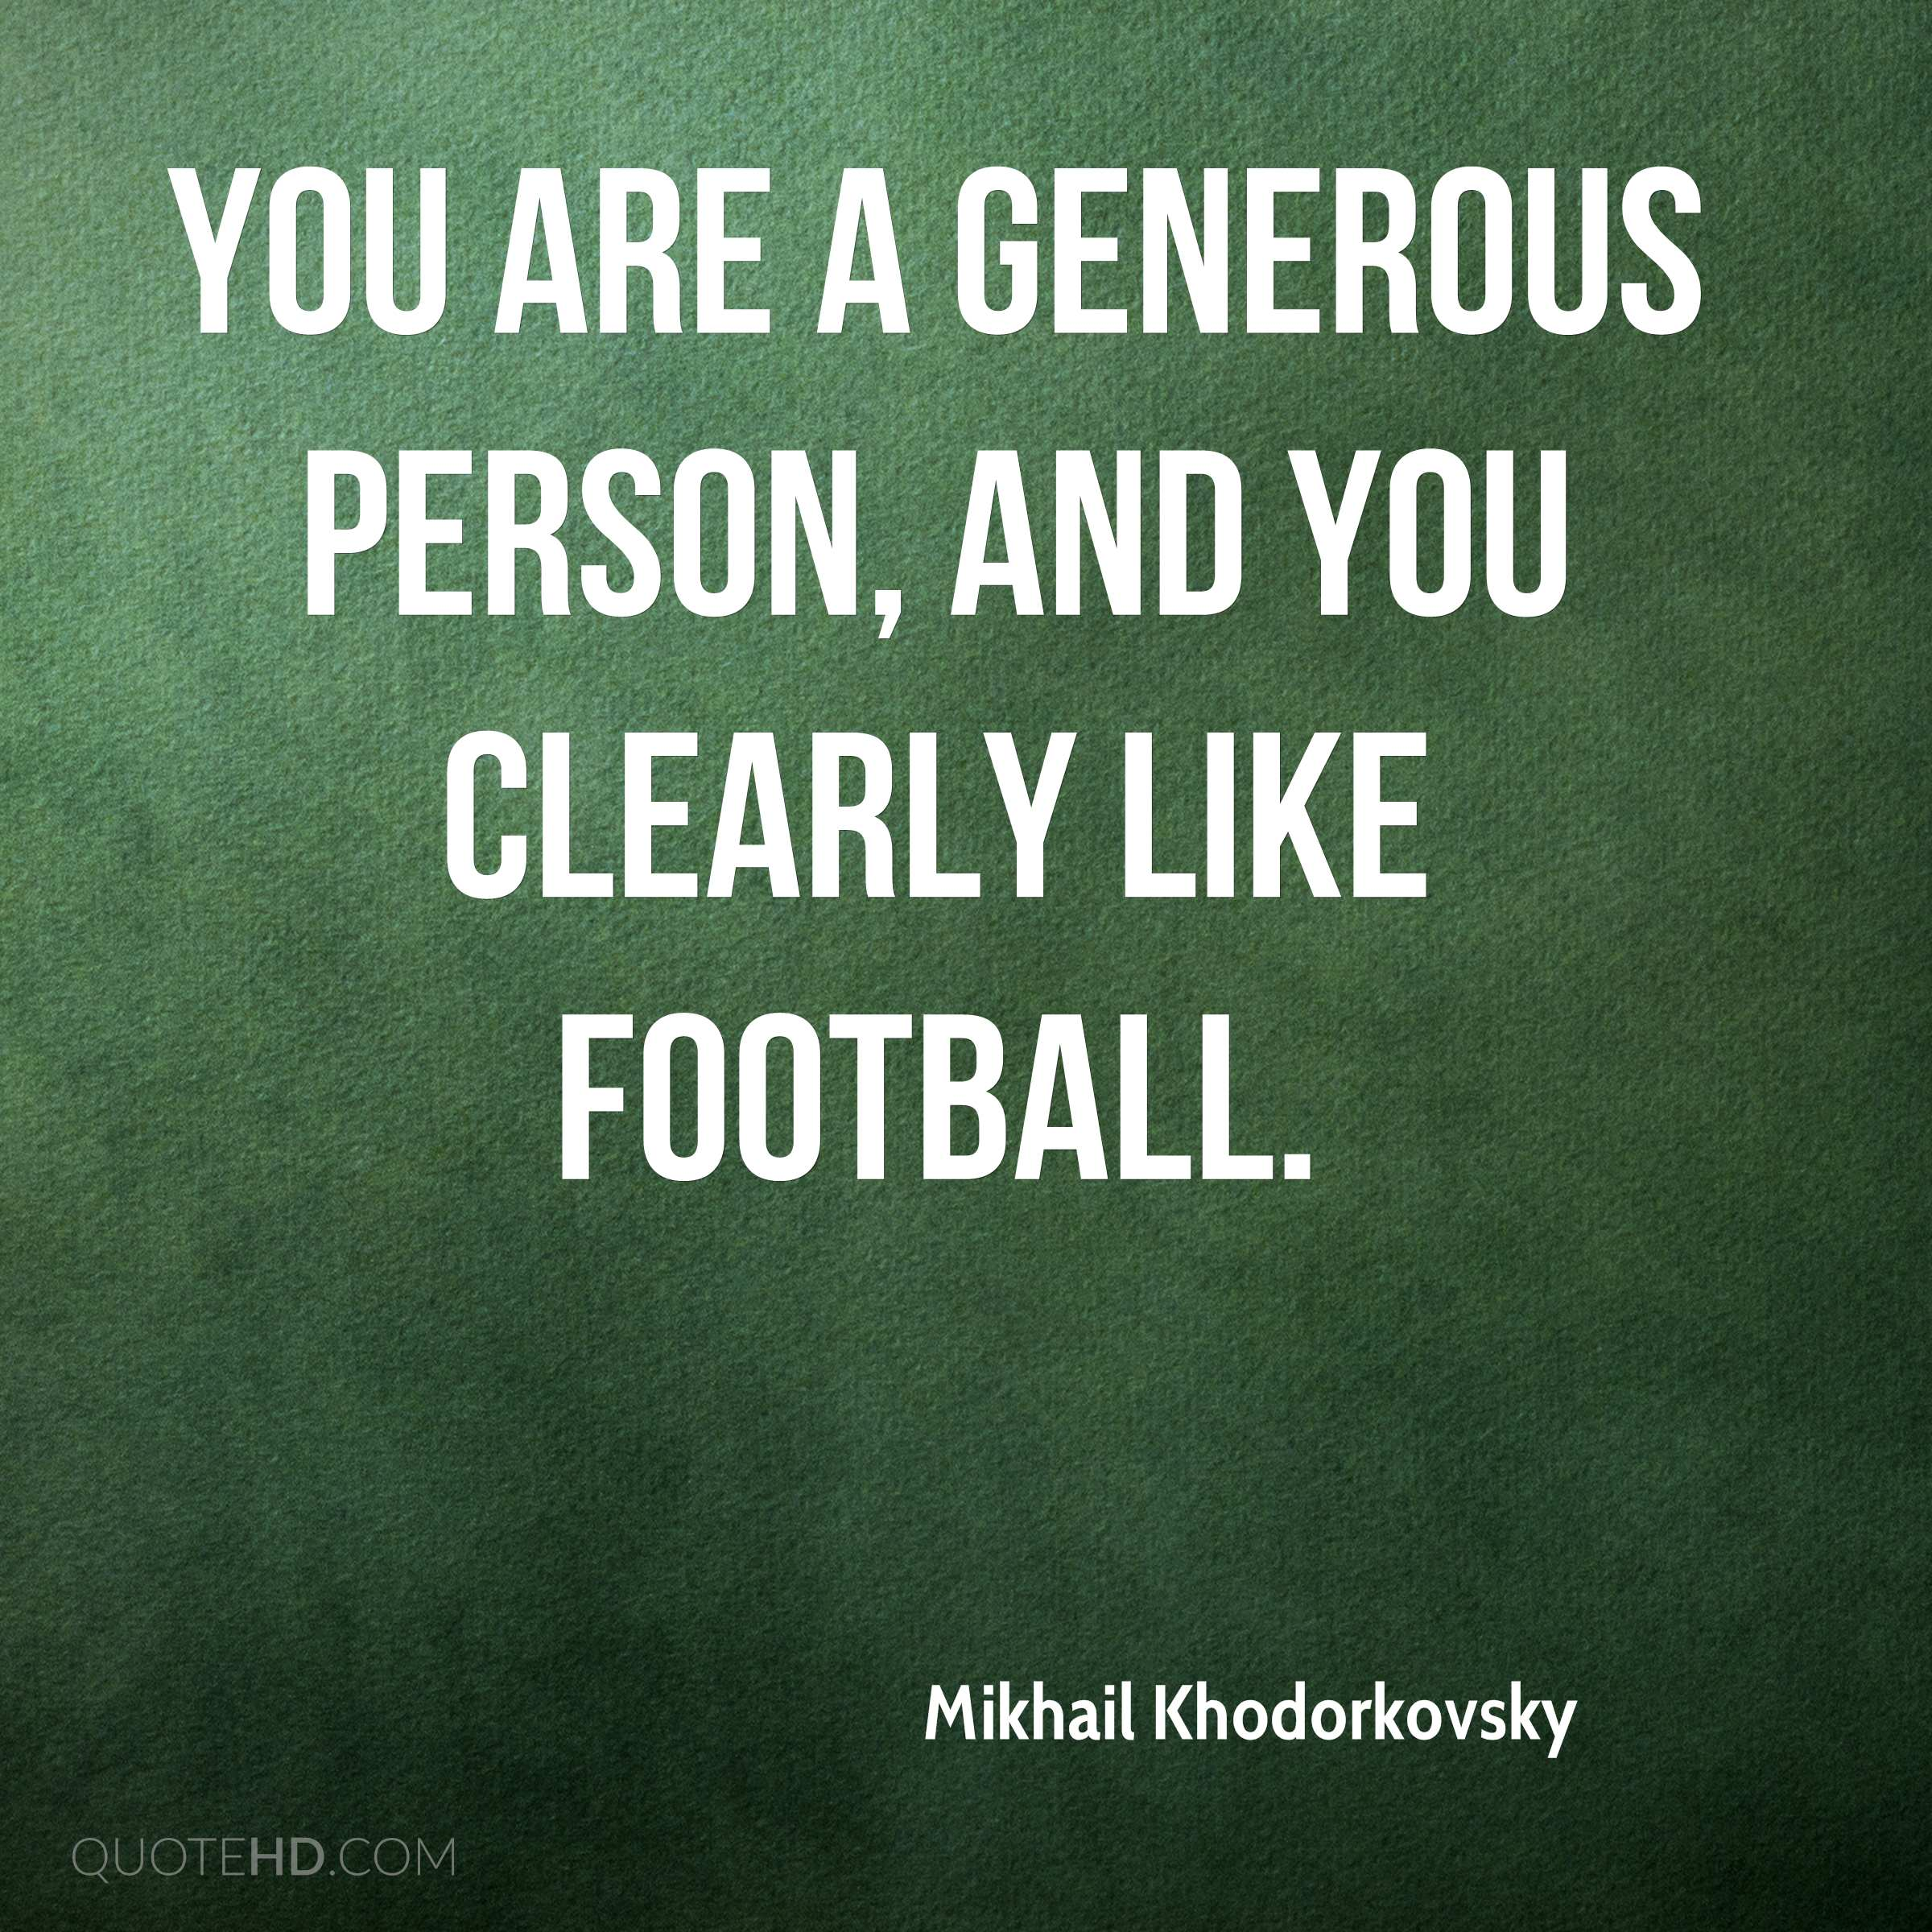 You are a generous person, and you clearly like football.